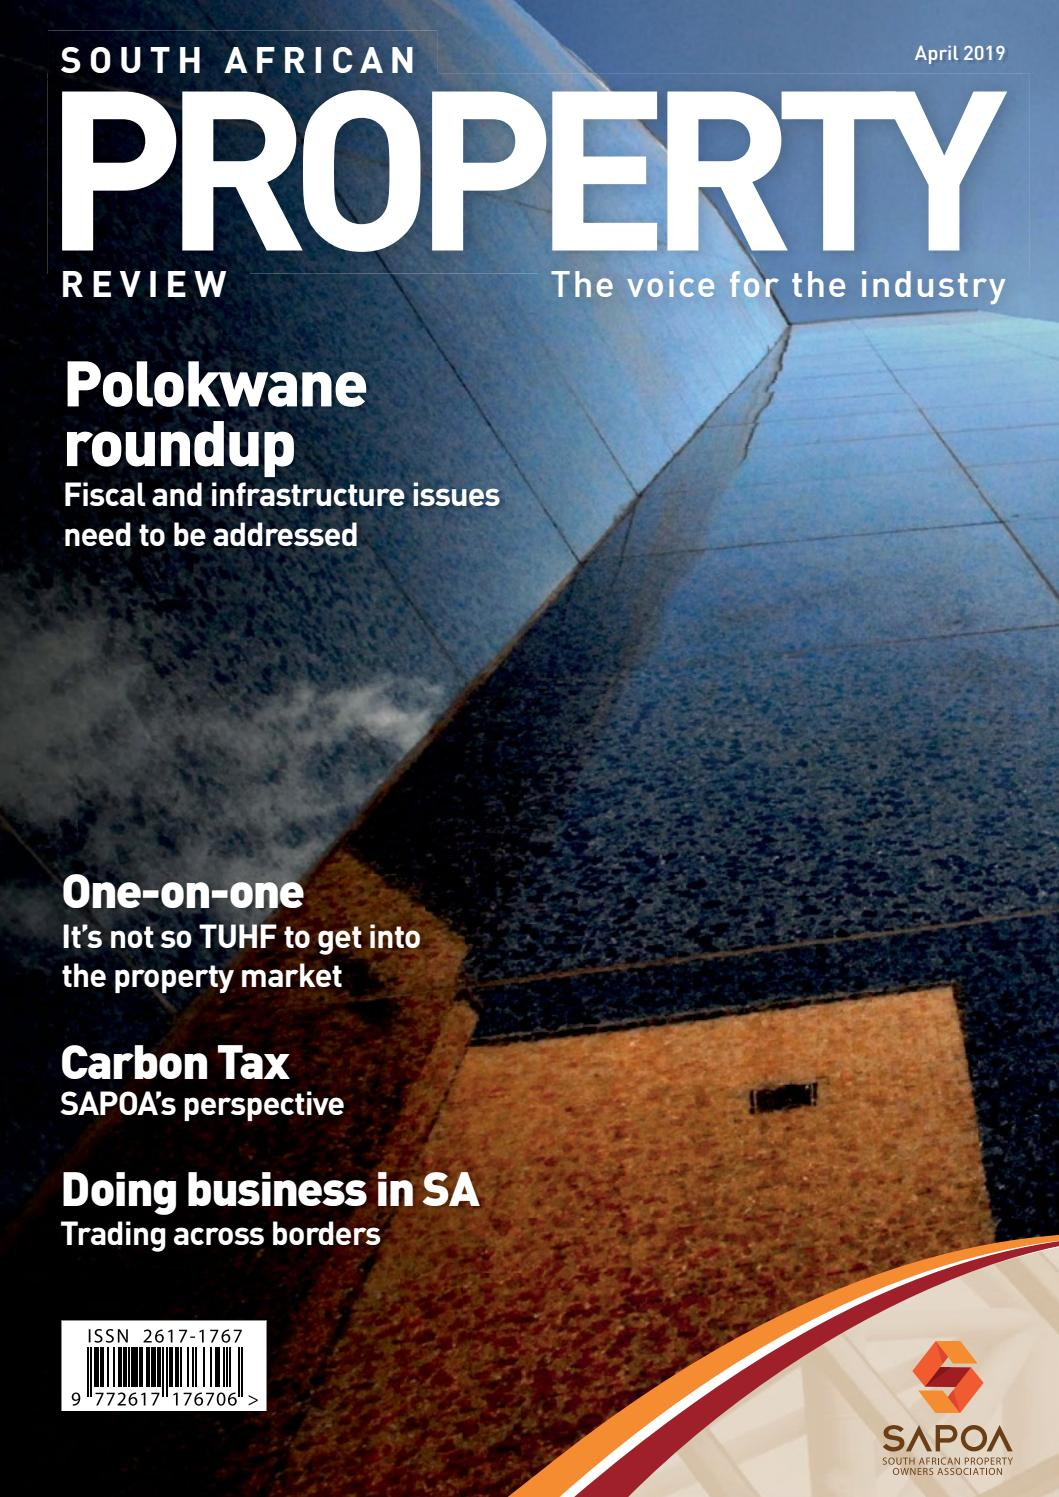 South African Property Review April 2019 by SAPOA - issuu